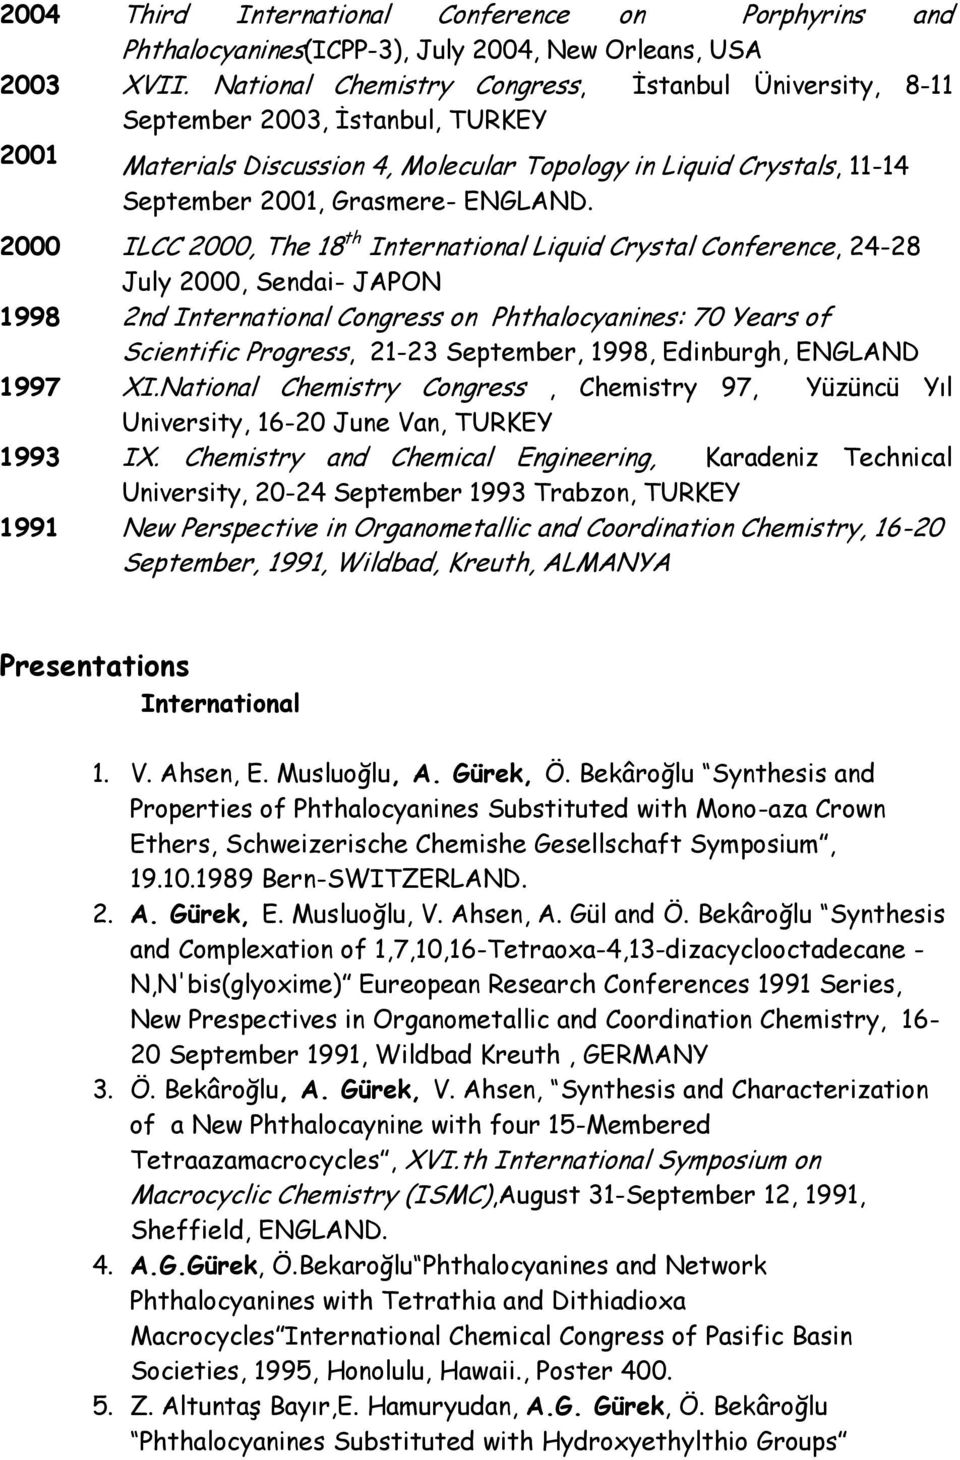 2000 ILCC 2000, The 18 th International Liquid Crystal Conference, 24-28 July 2000, Sendai- JAPON 1998 2nd International Congress on Phthalocyanines: 70 Years of Scientific Progress, 21-23 September,